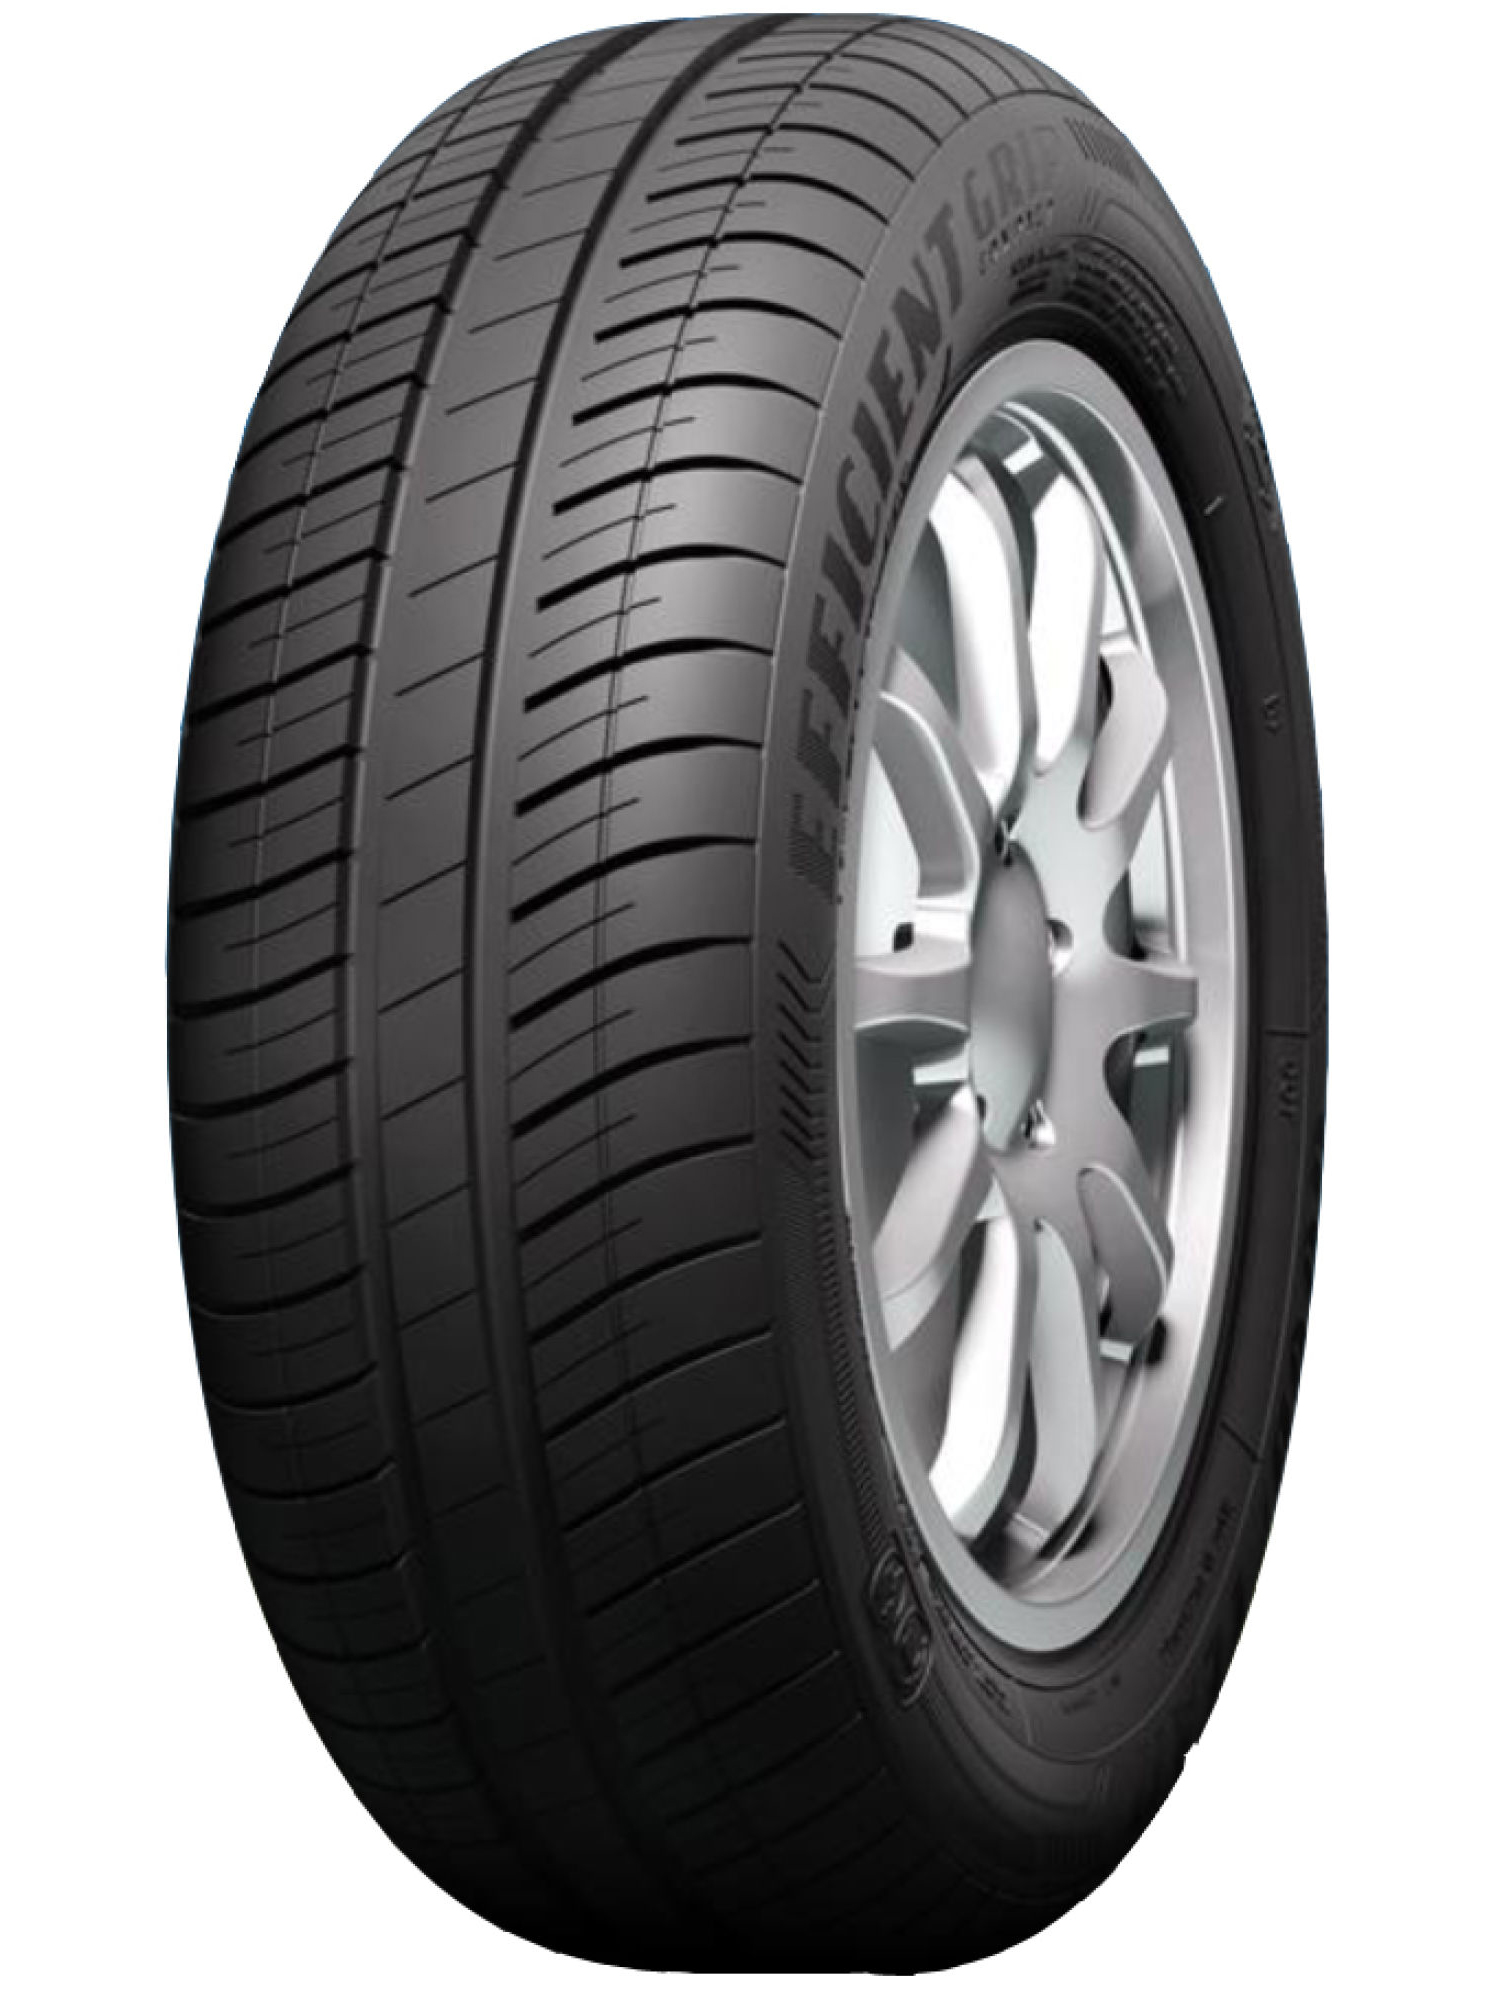 Anvelopa vara GOODYEAR Efficientgrip Compact 165/70 R14 81T